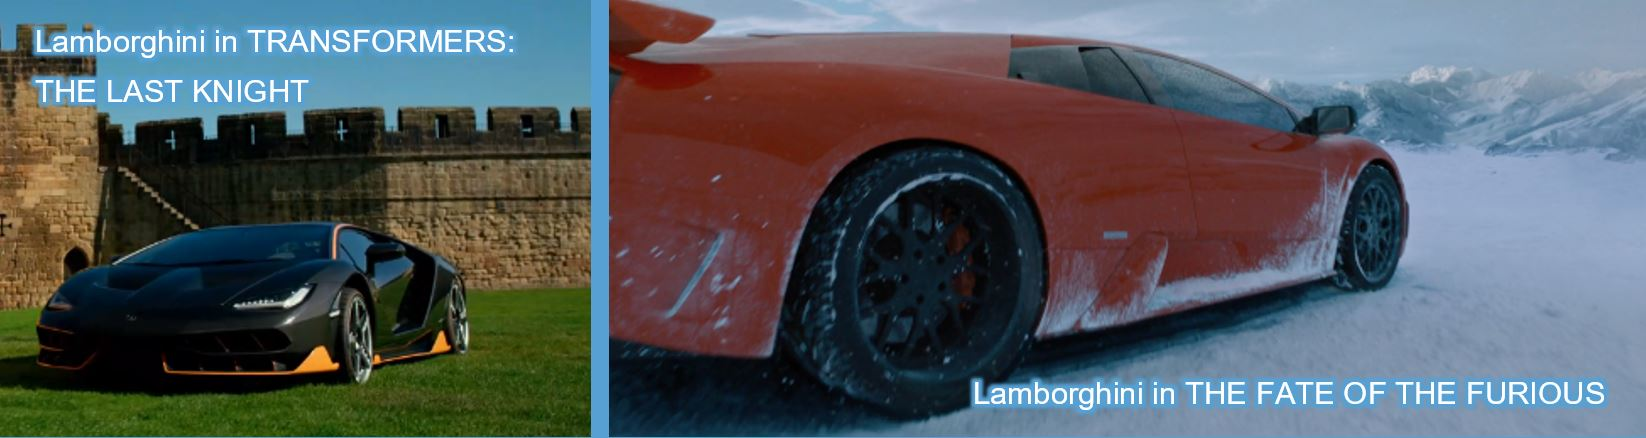 Lamborghini concave brand tracking product placement brand mentions the fate of the furious transformers the last knight